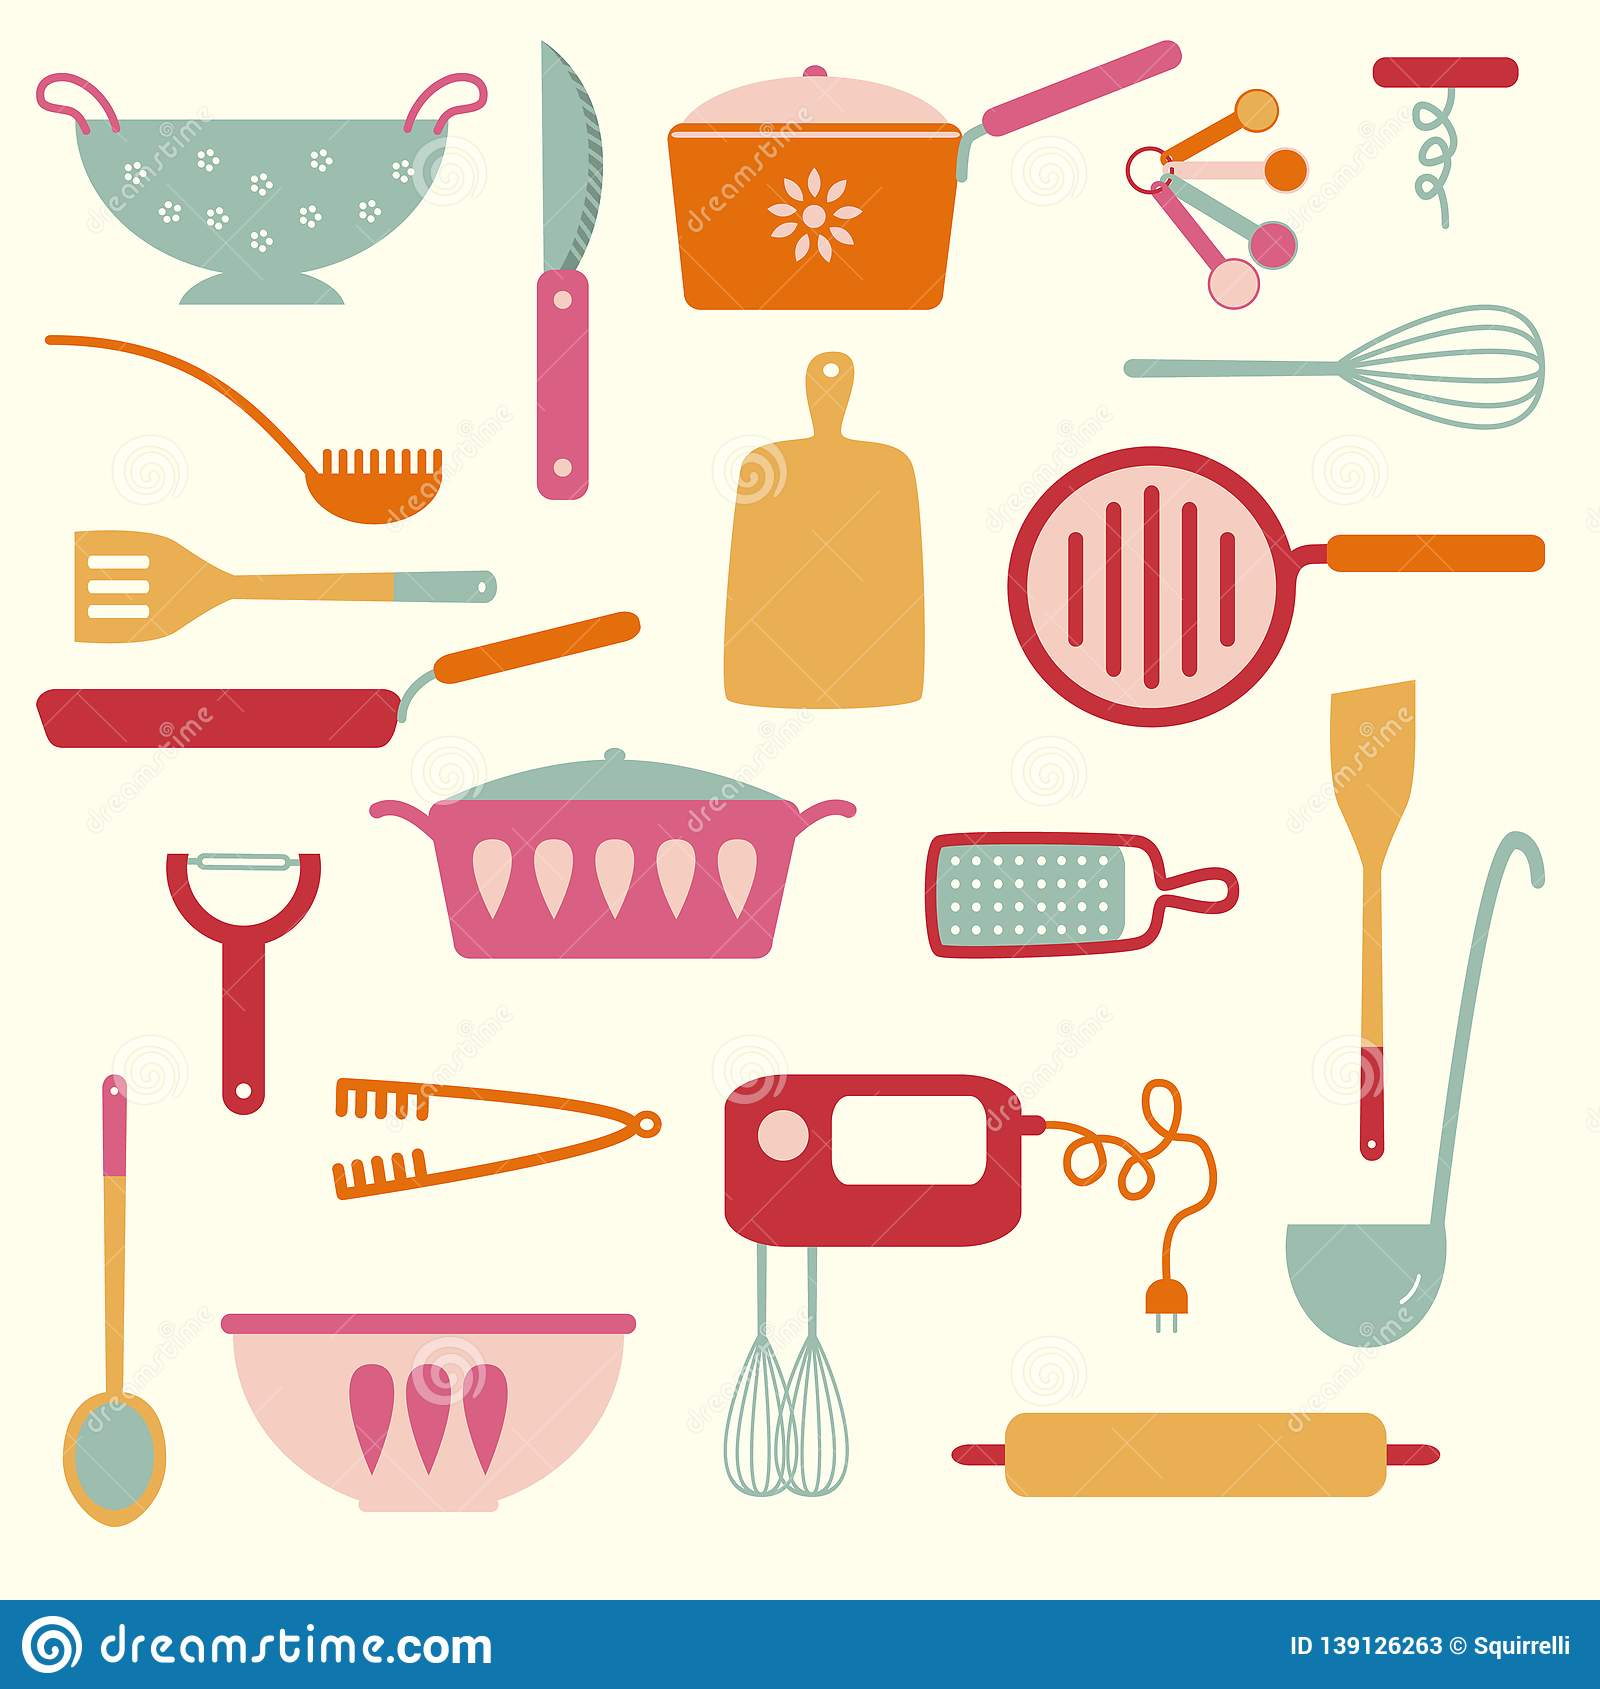 Kitchen And Restaurant Equipment And Utensils Stock Vector Illustration Of Backgrounds Board 139126263